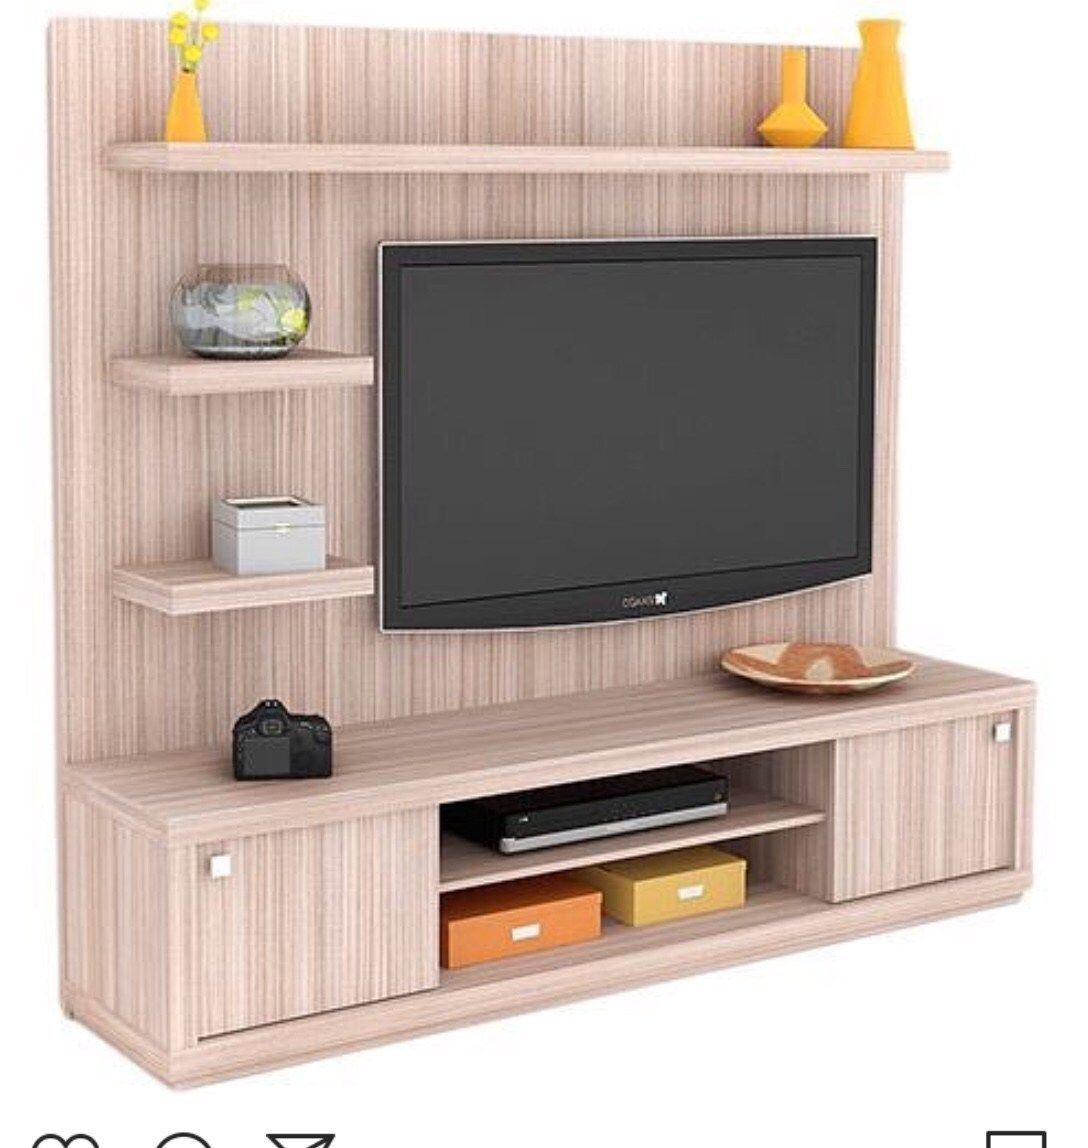 30 Amazing Tv Unit Design Ideas For Your Living Room The Wonder Cottage Tv Unit Furniture Living Room Tv Wall Living Room Tv